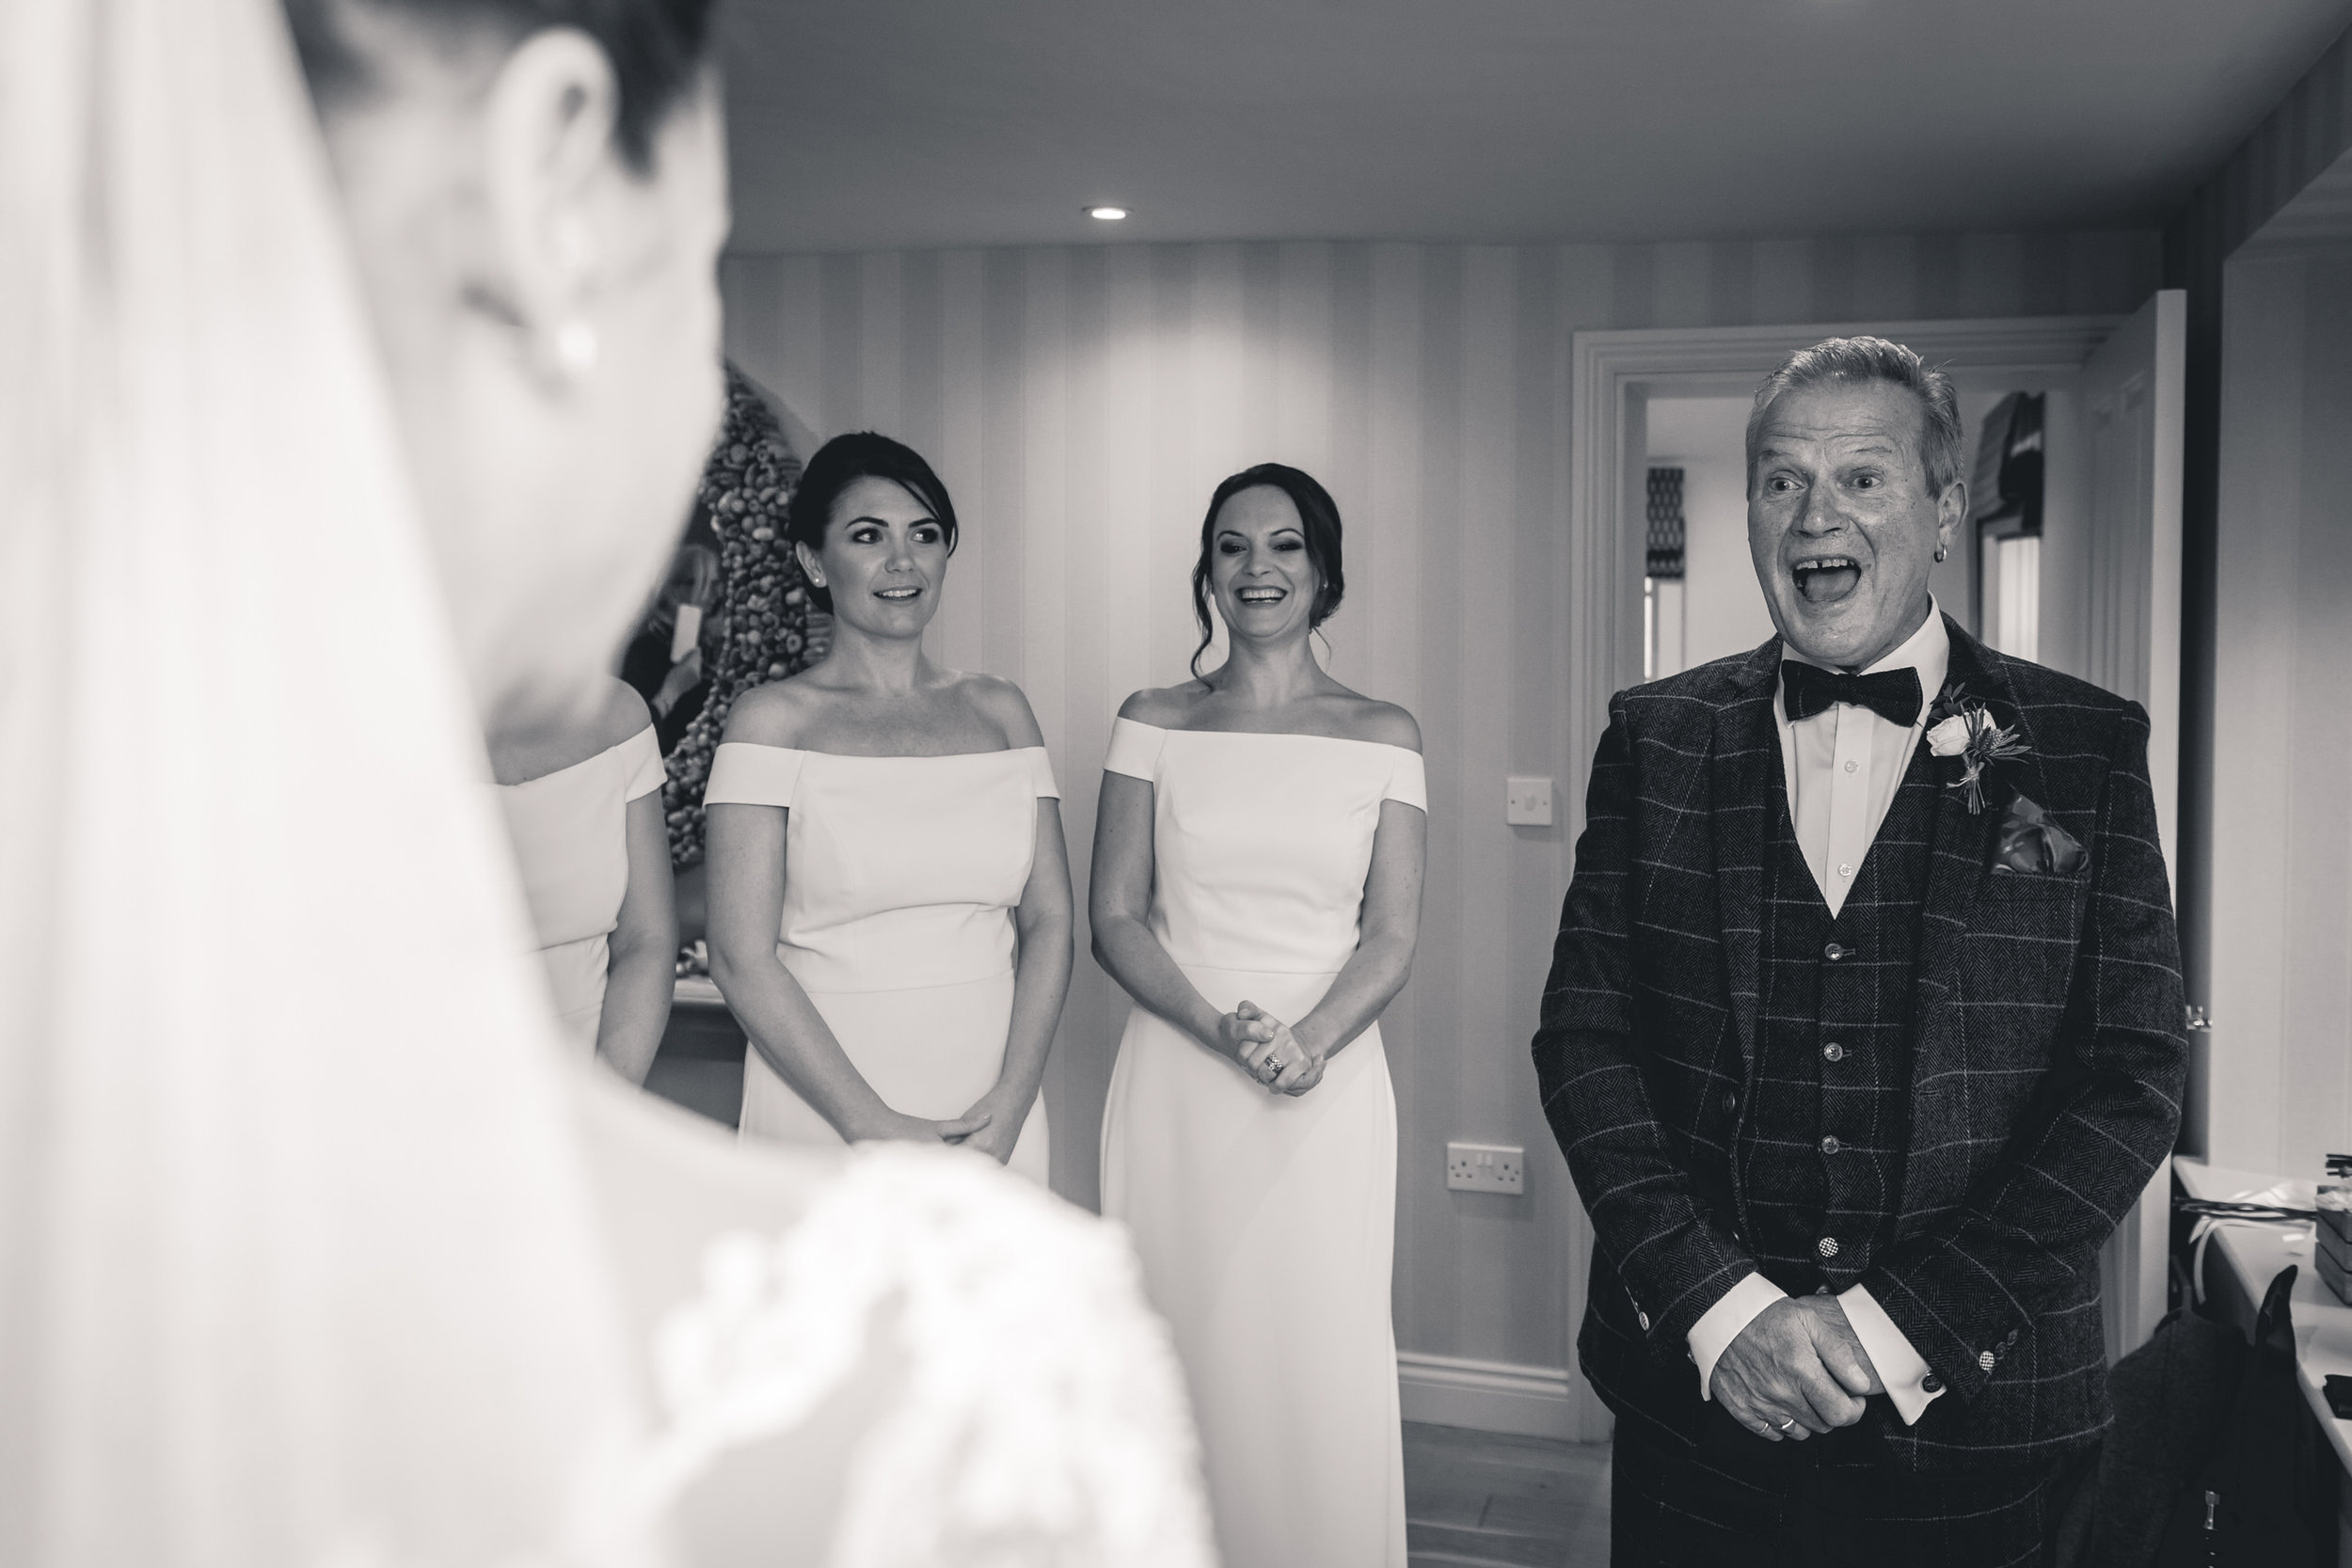 leeds-yorkshire-wedding-photographer-candid-emothion 21.jpg